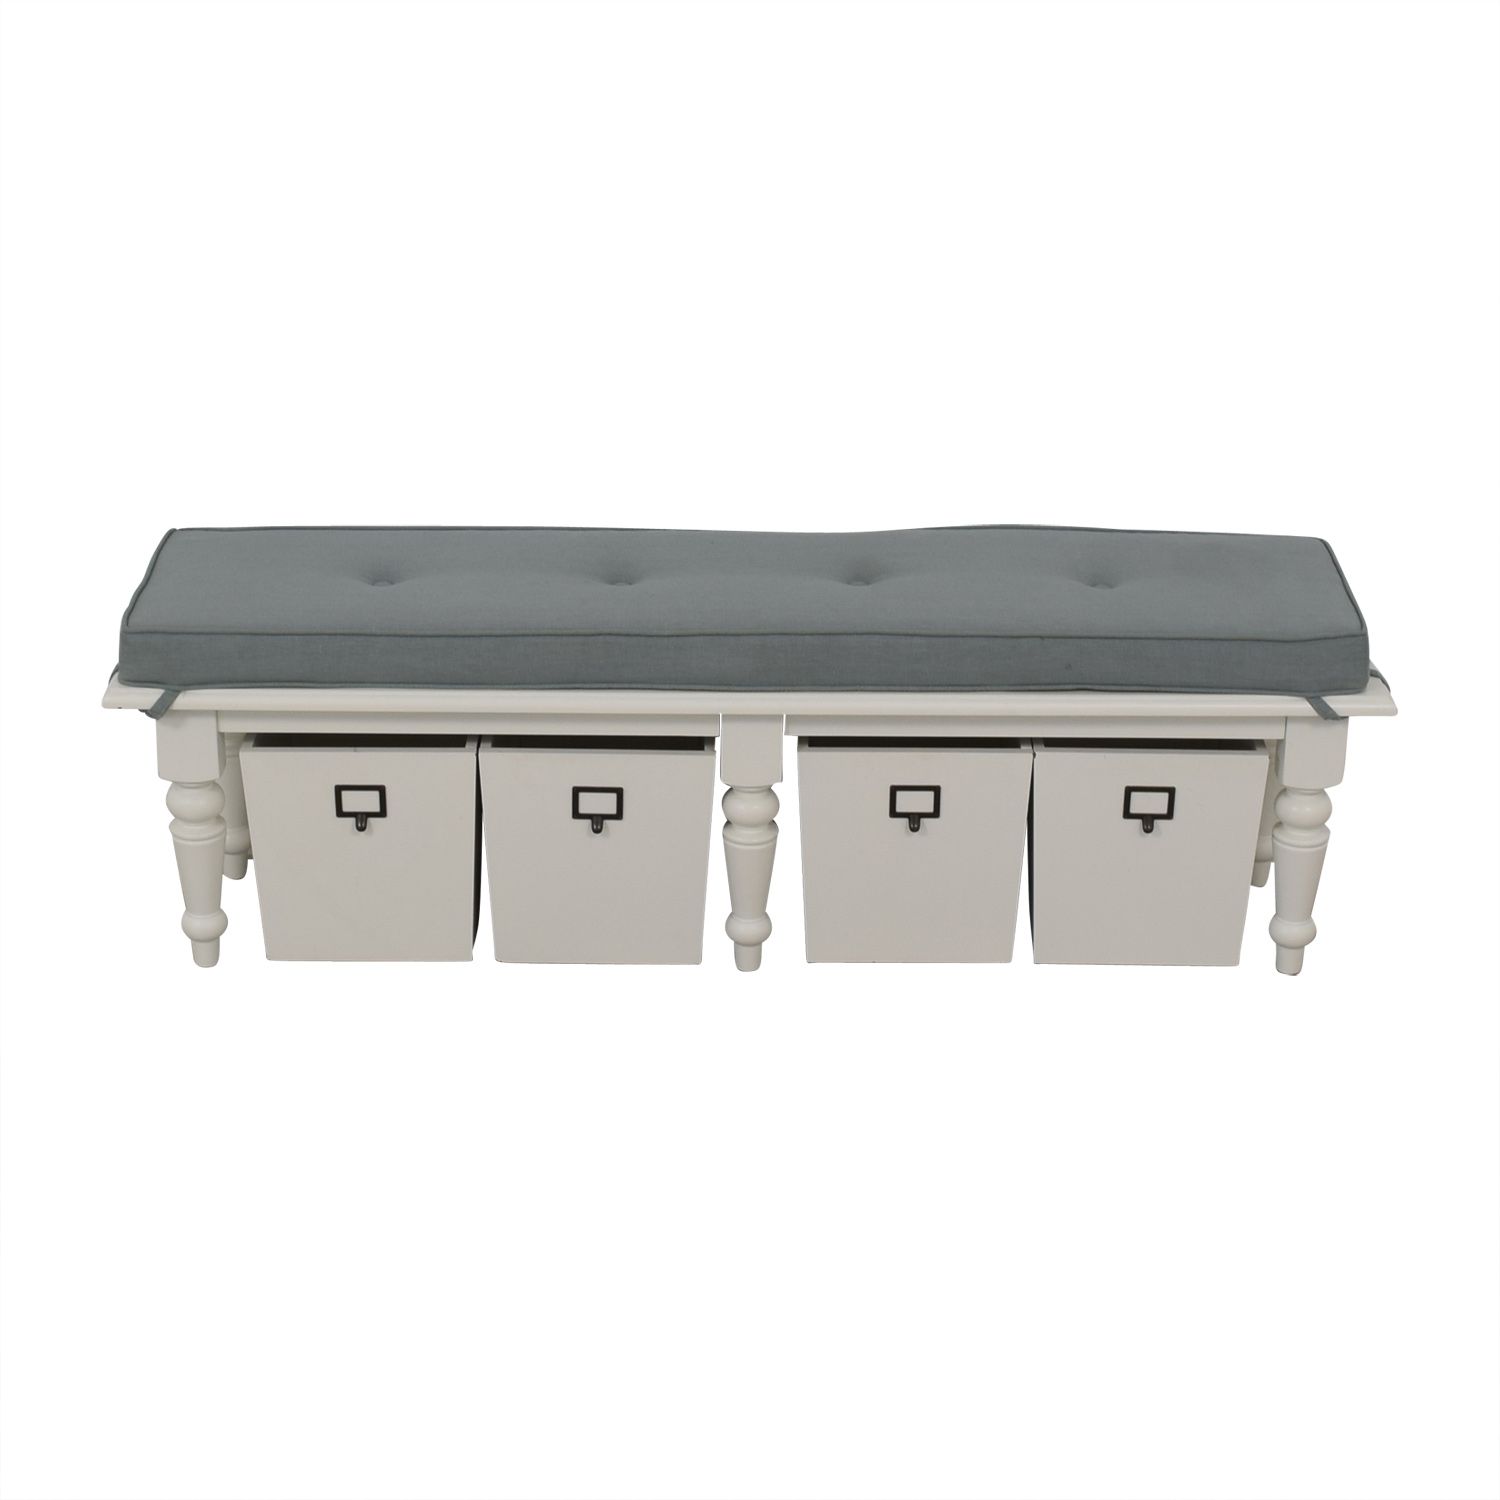 61 off homegoods home goods grey upholstered and white bench with four storage boxes chairs